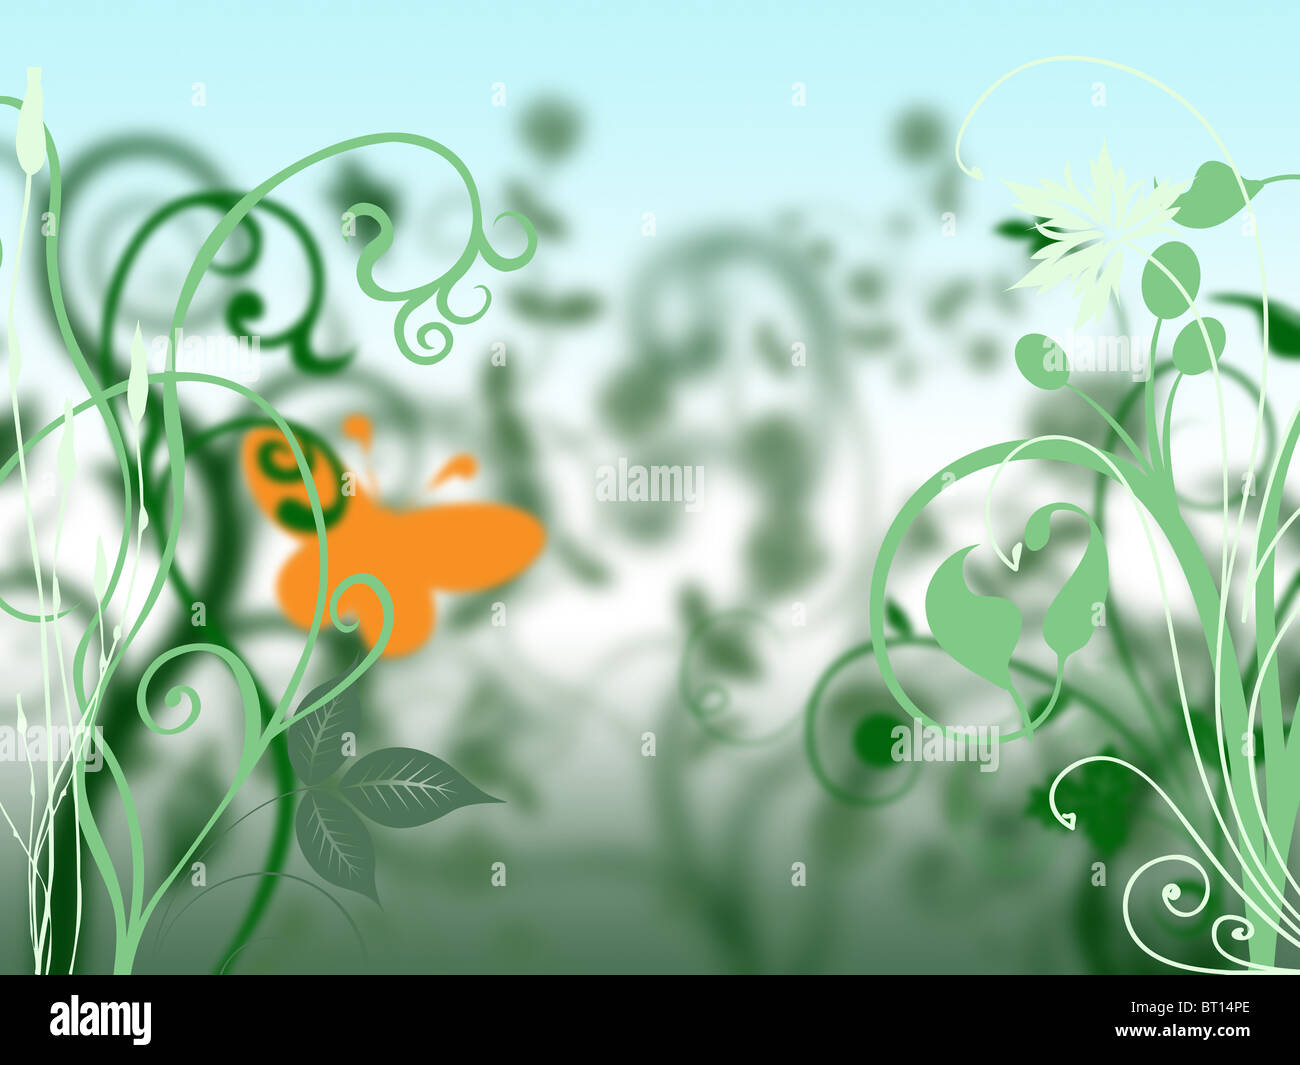 Illustration of plants, leaves, stems and a butterfly with a narrow depth of field and low point of view. - Stock Image